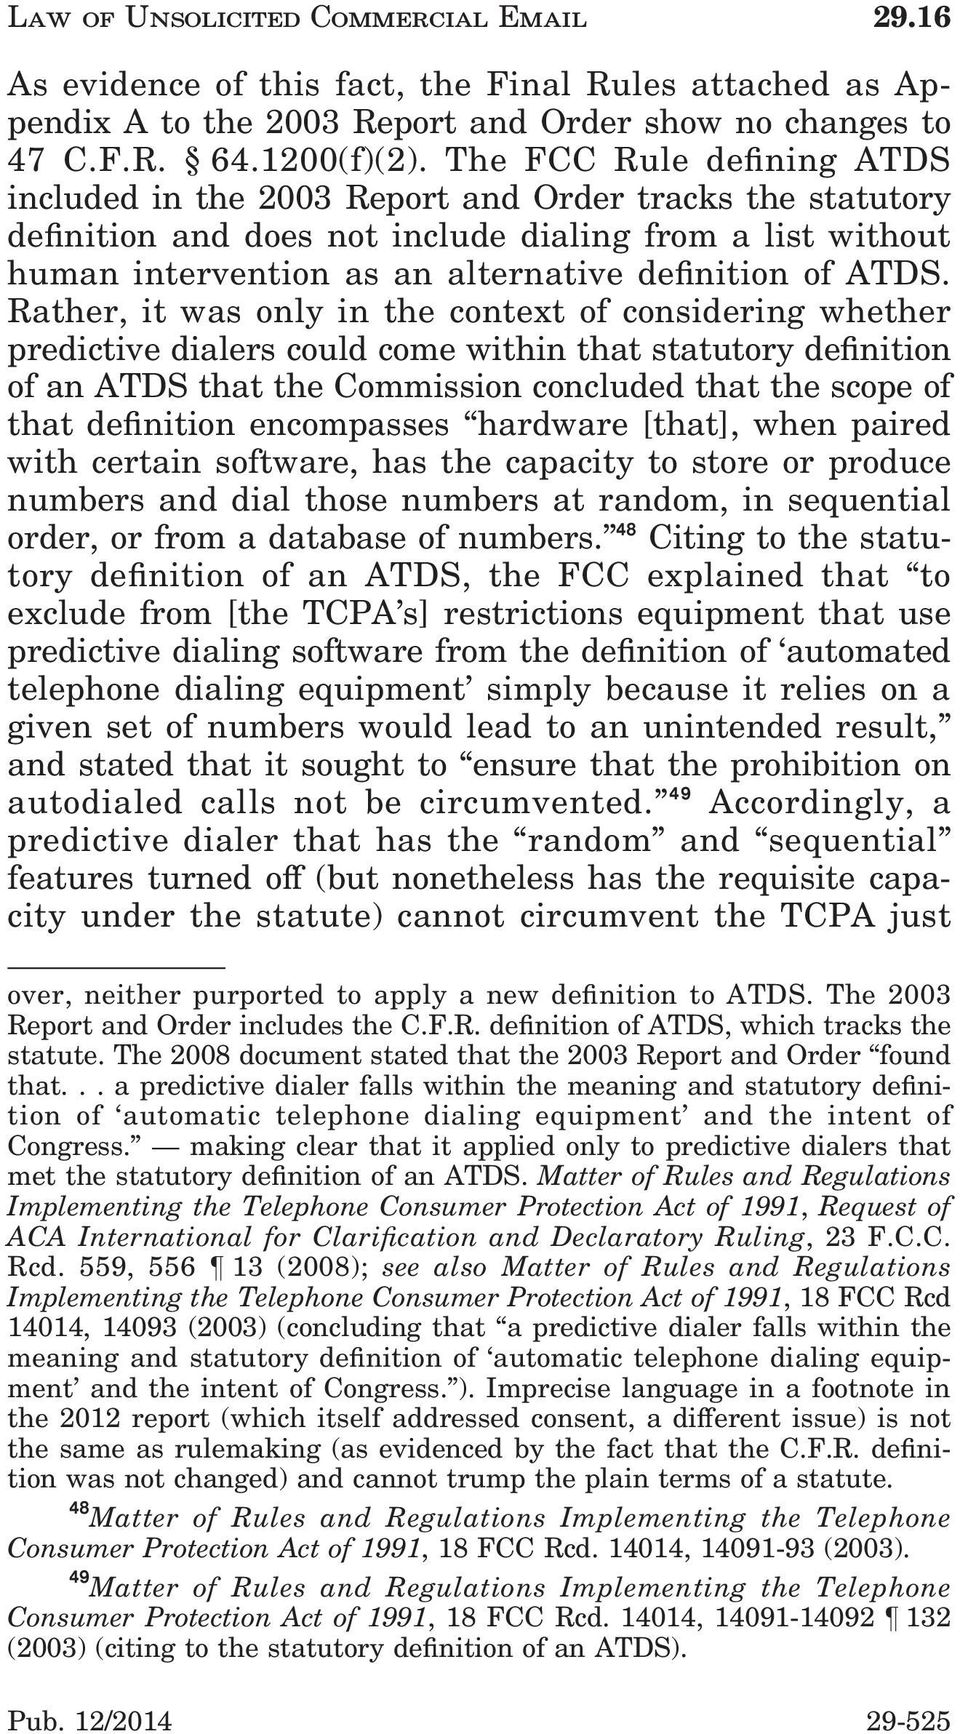 Rather, it was only in the context of considering whether predictive dialers could come within that statutory denition of an ATDS that the Commission concluded that the scope of that denition